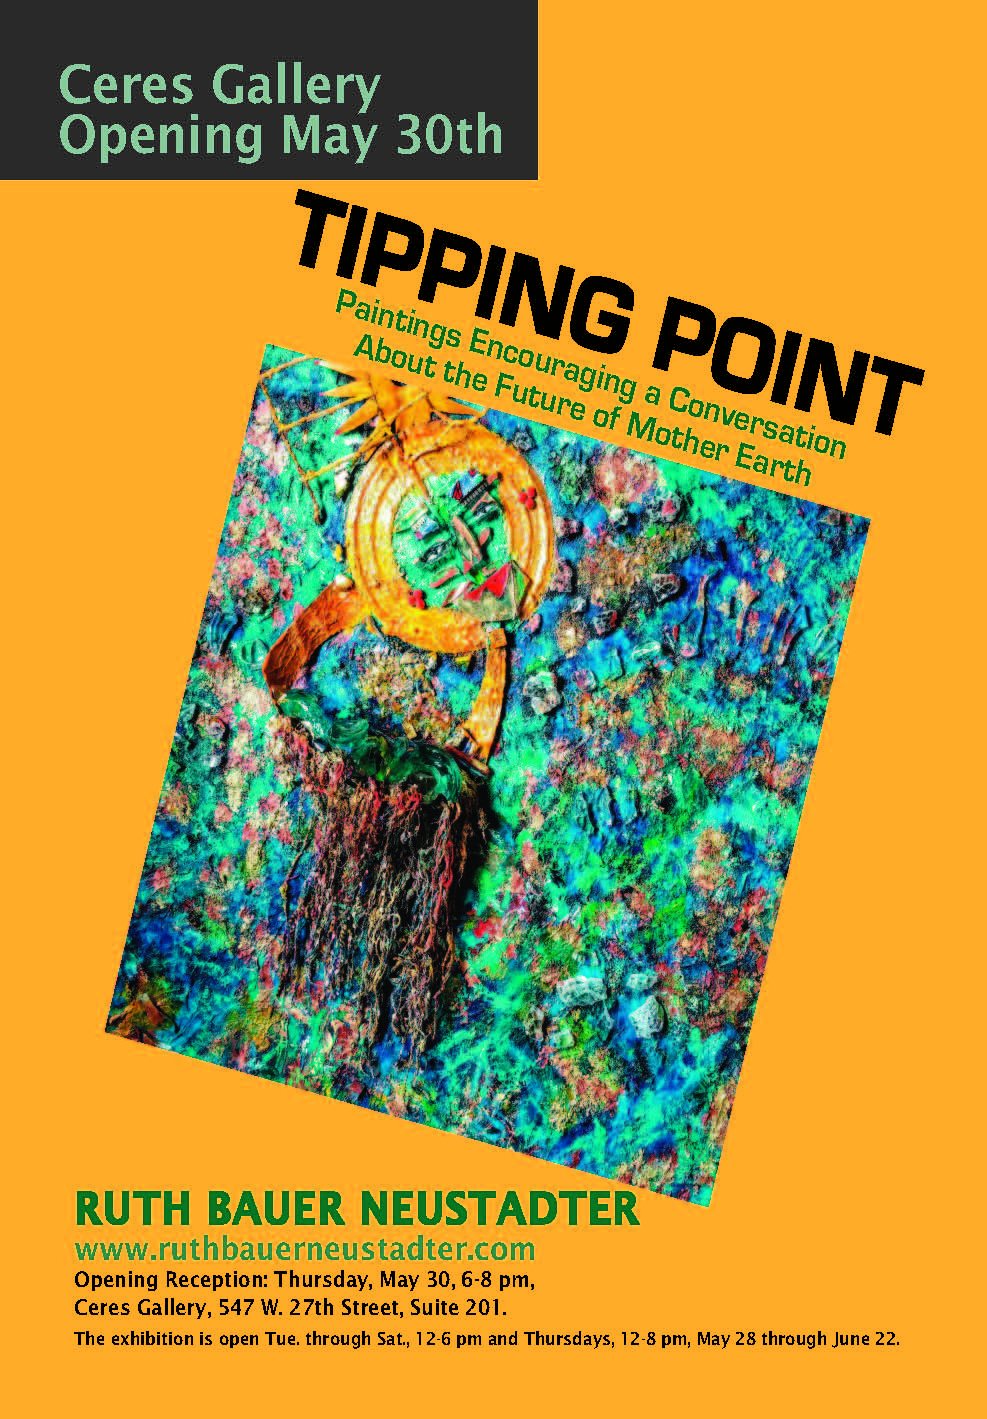 Tipping Point Solo Exhibit at Ceres